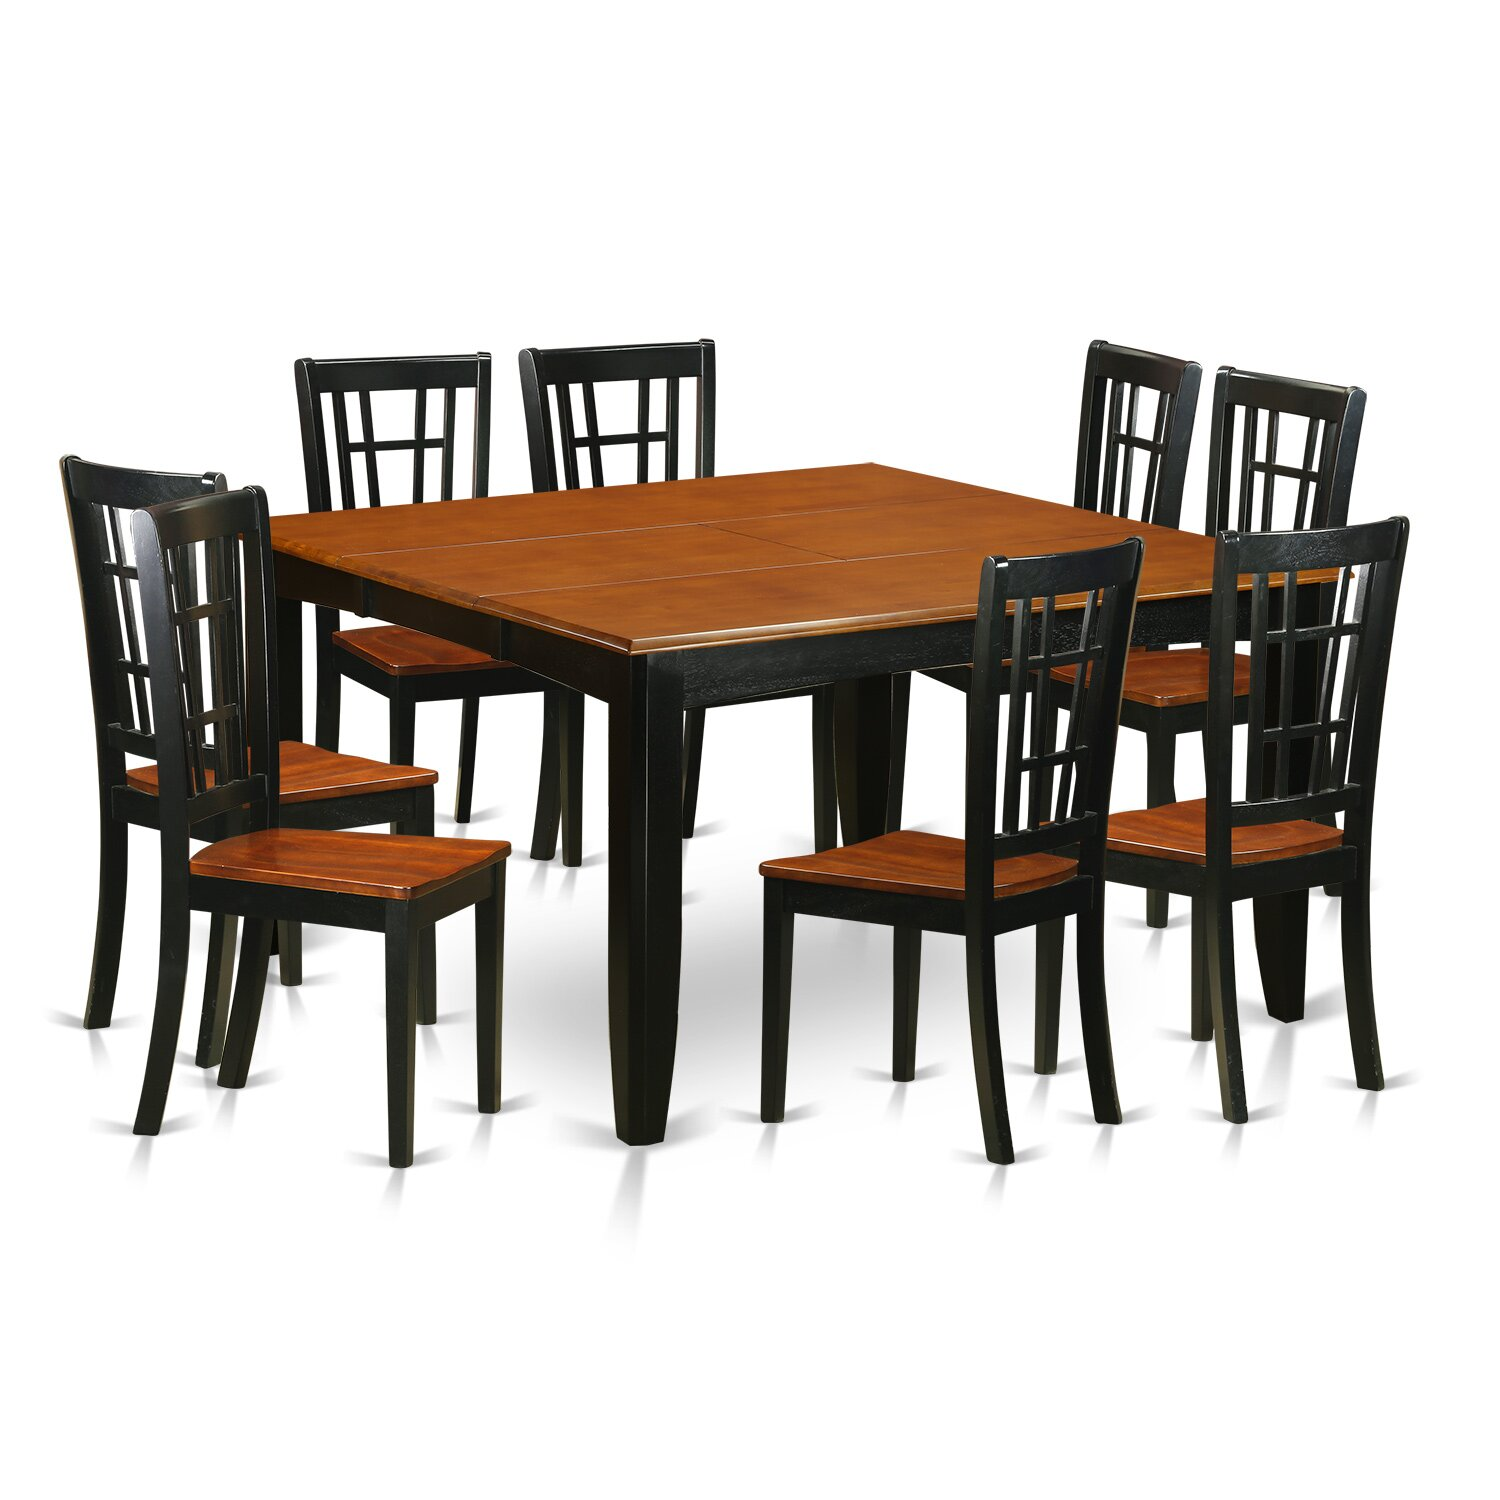 East west parfait 9 piece dining set wayfair for Jardin 8 piece dining set